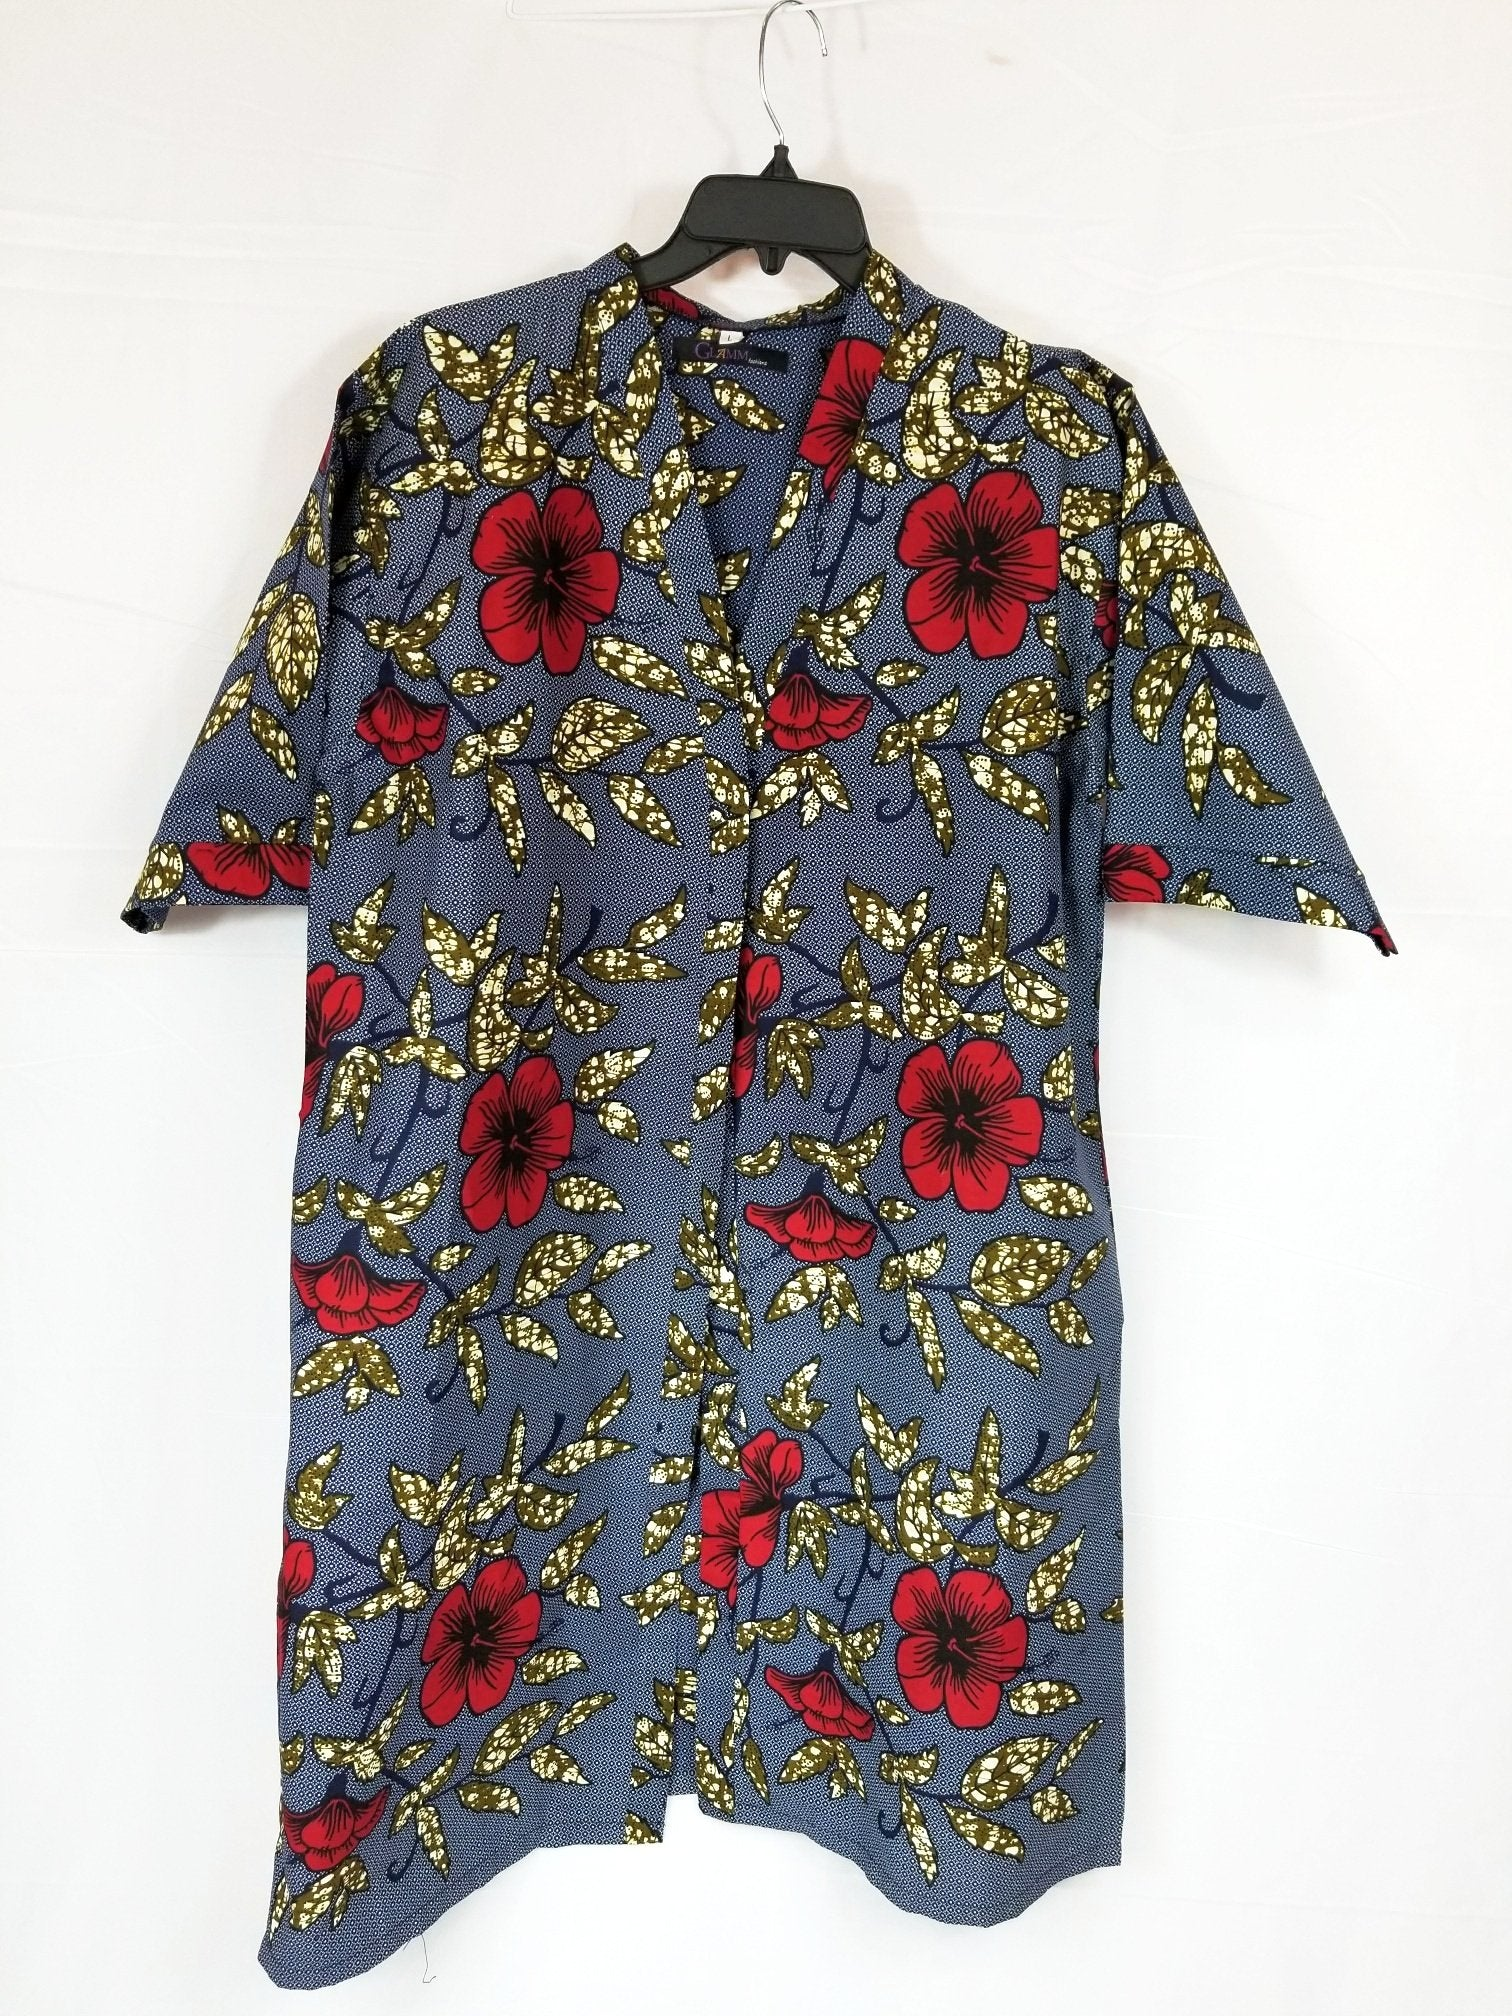 FARA ANKARA Kimono Style coat (Blue with red and brown flowers)